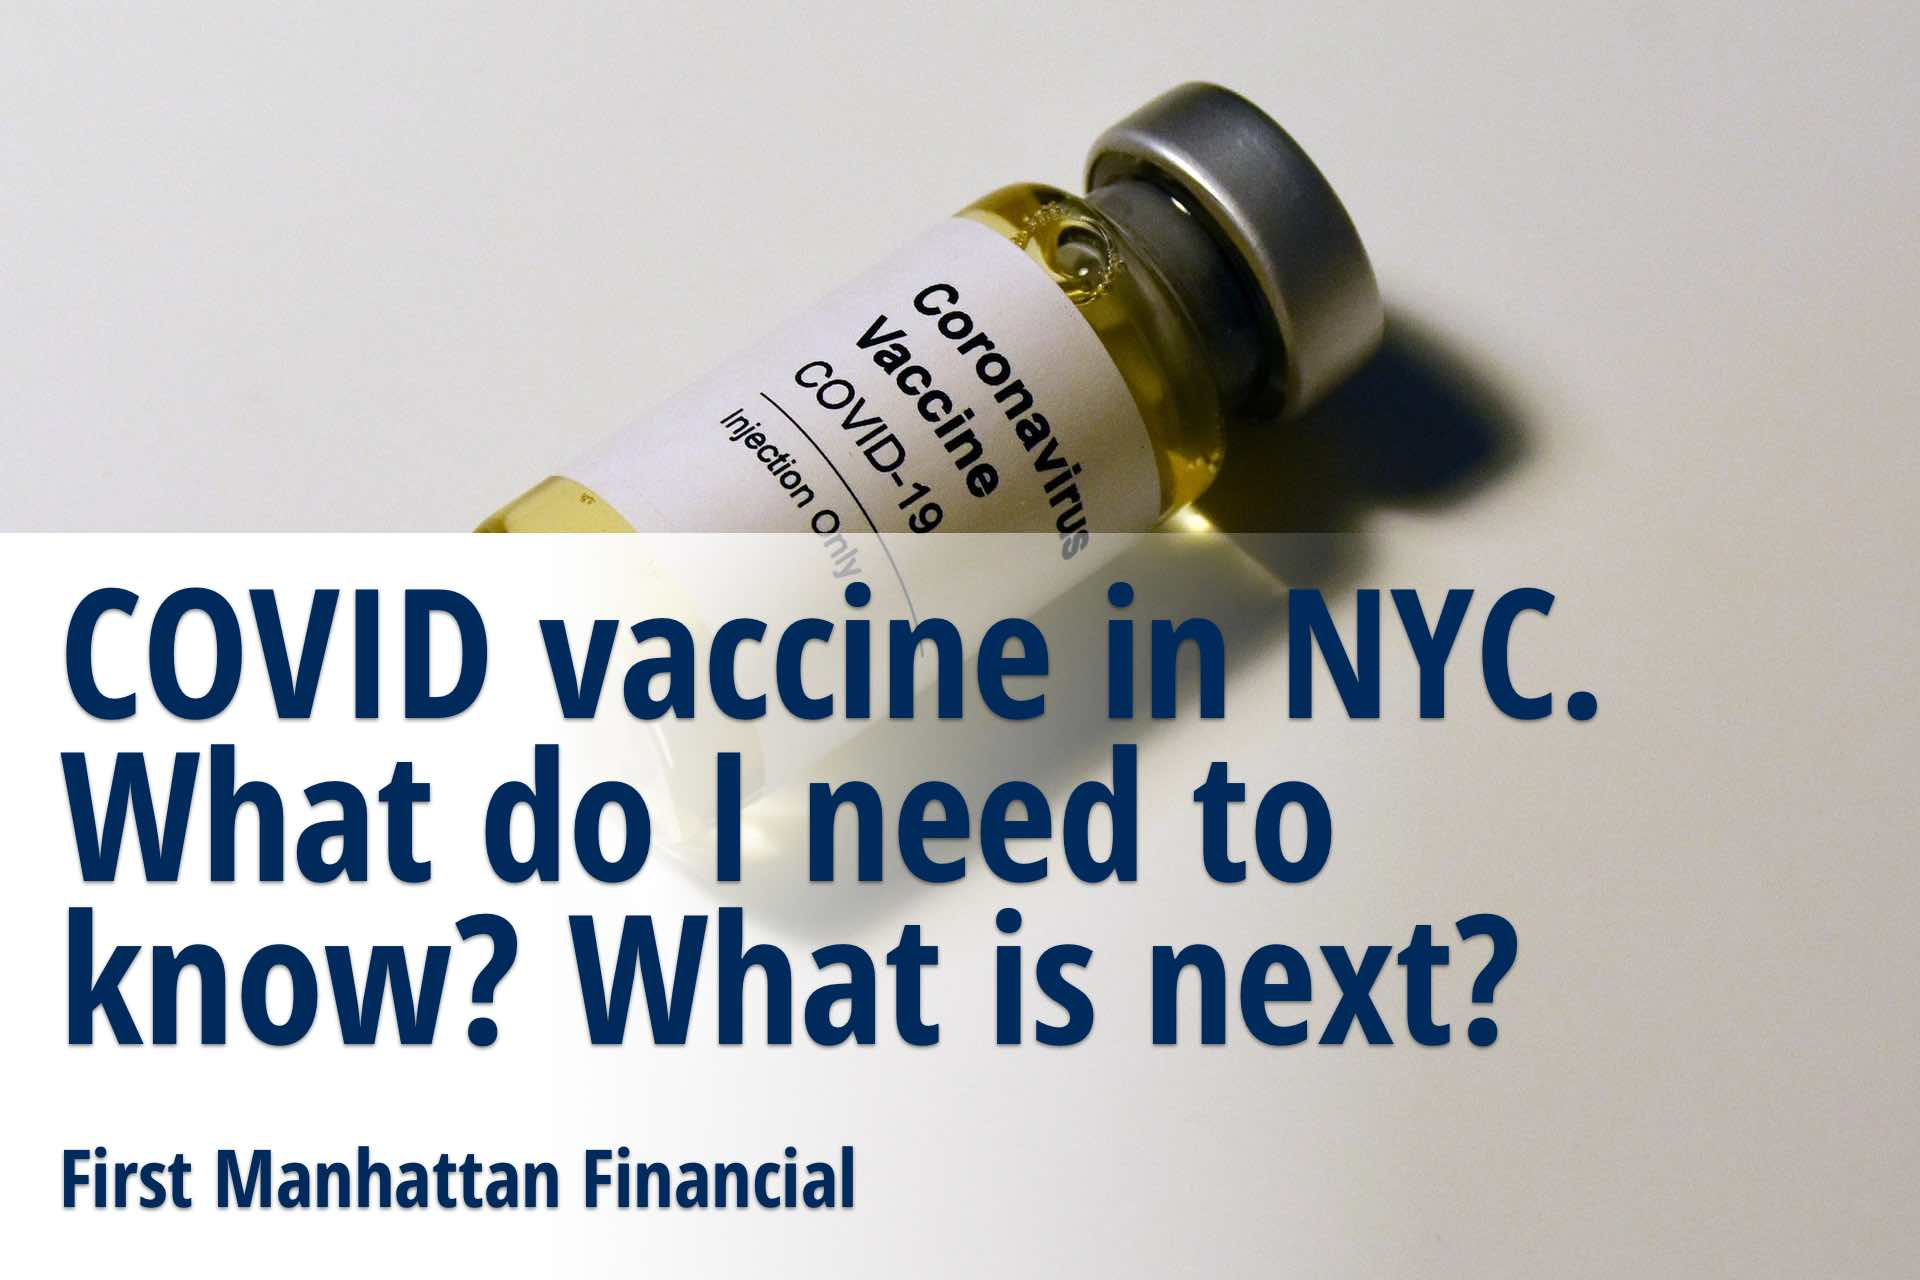 COVID vaccine in NYC. What do I need to know? What is next?